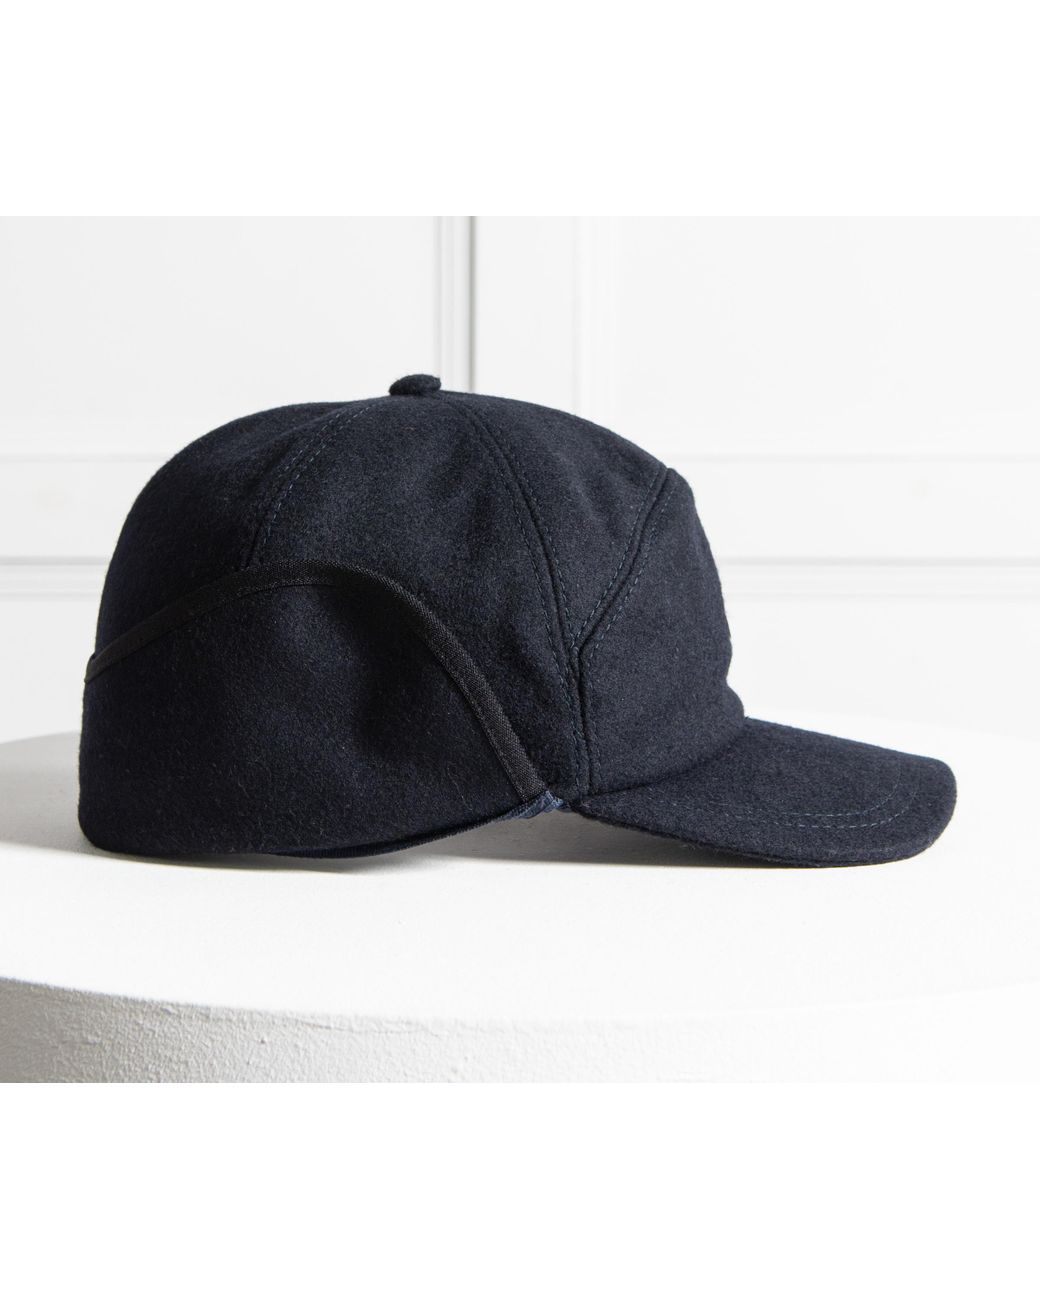 43ecd47be Paul & Shark Flannel Cap With Neck Flap Navy in Blue for Men - Lyst